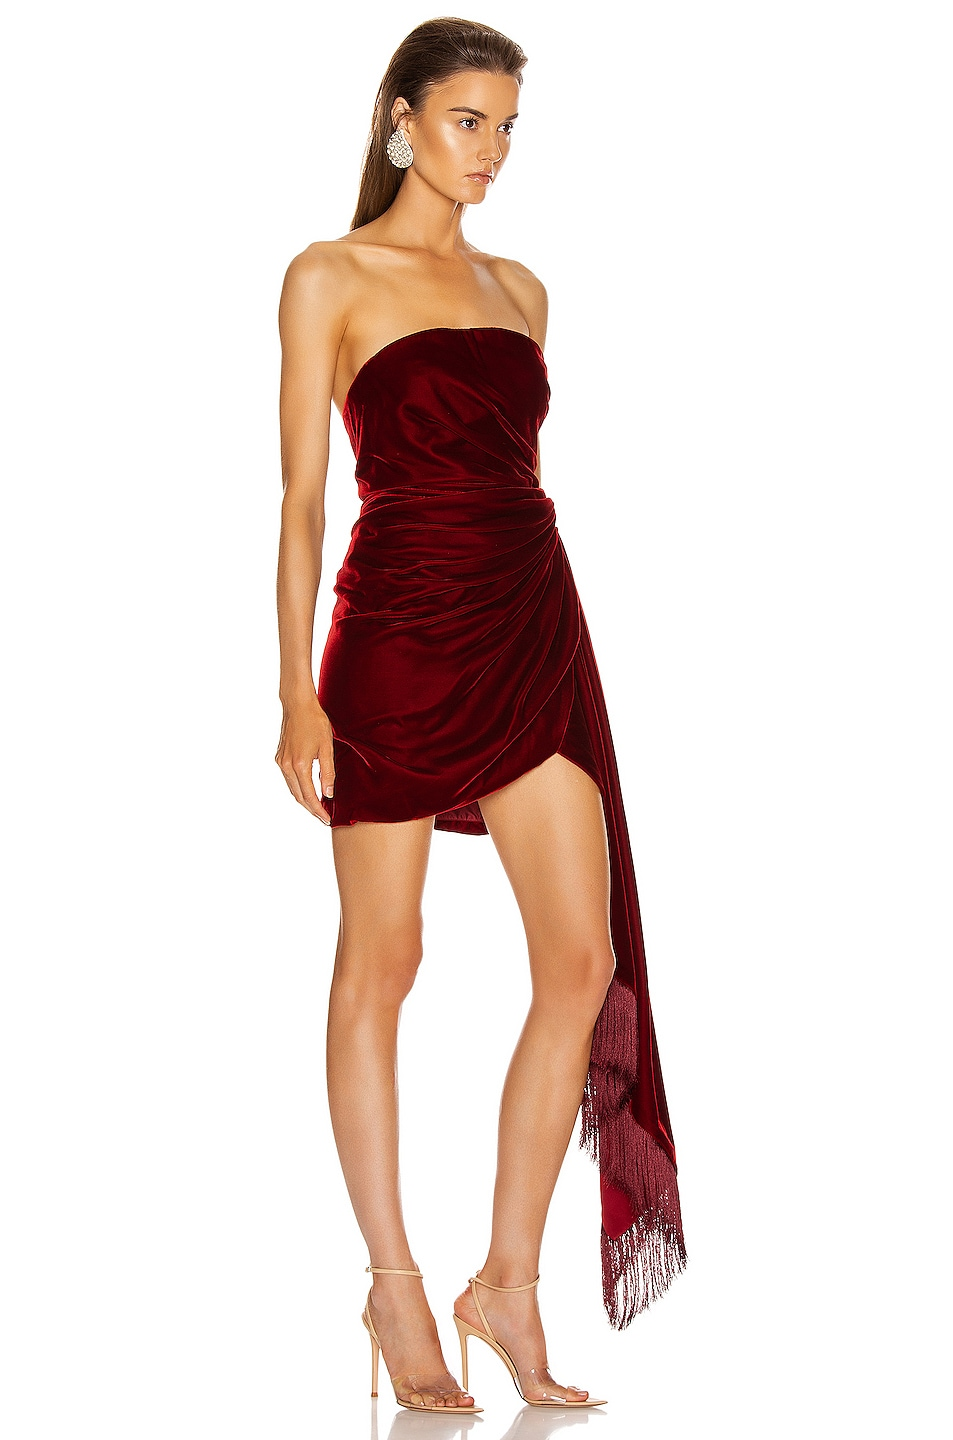 Image 2 of Oscar de la Renta Strapless Cocktail Dress in Claret